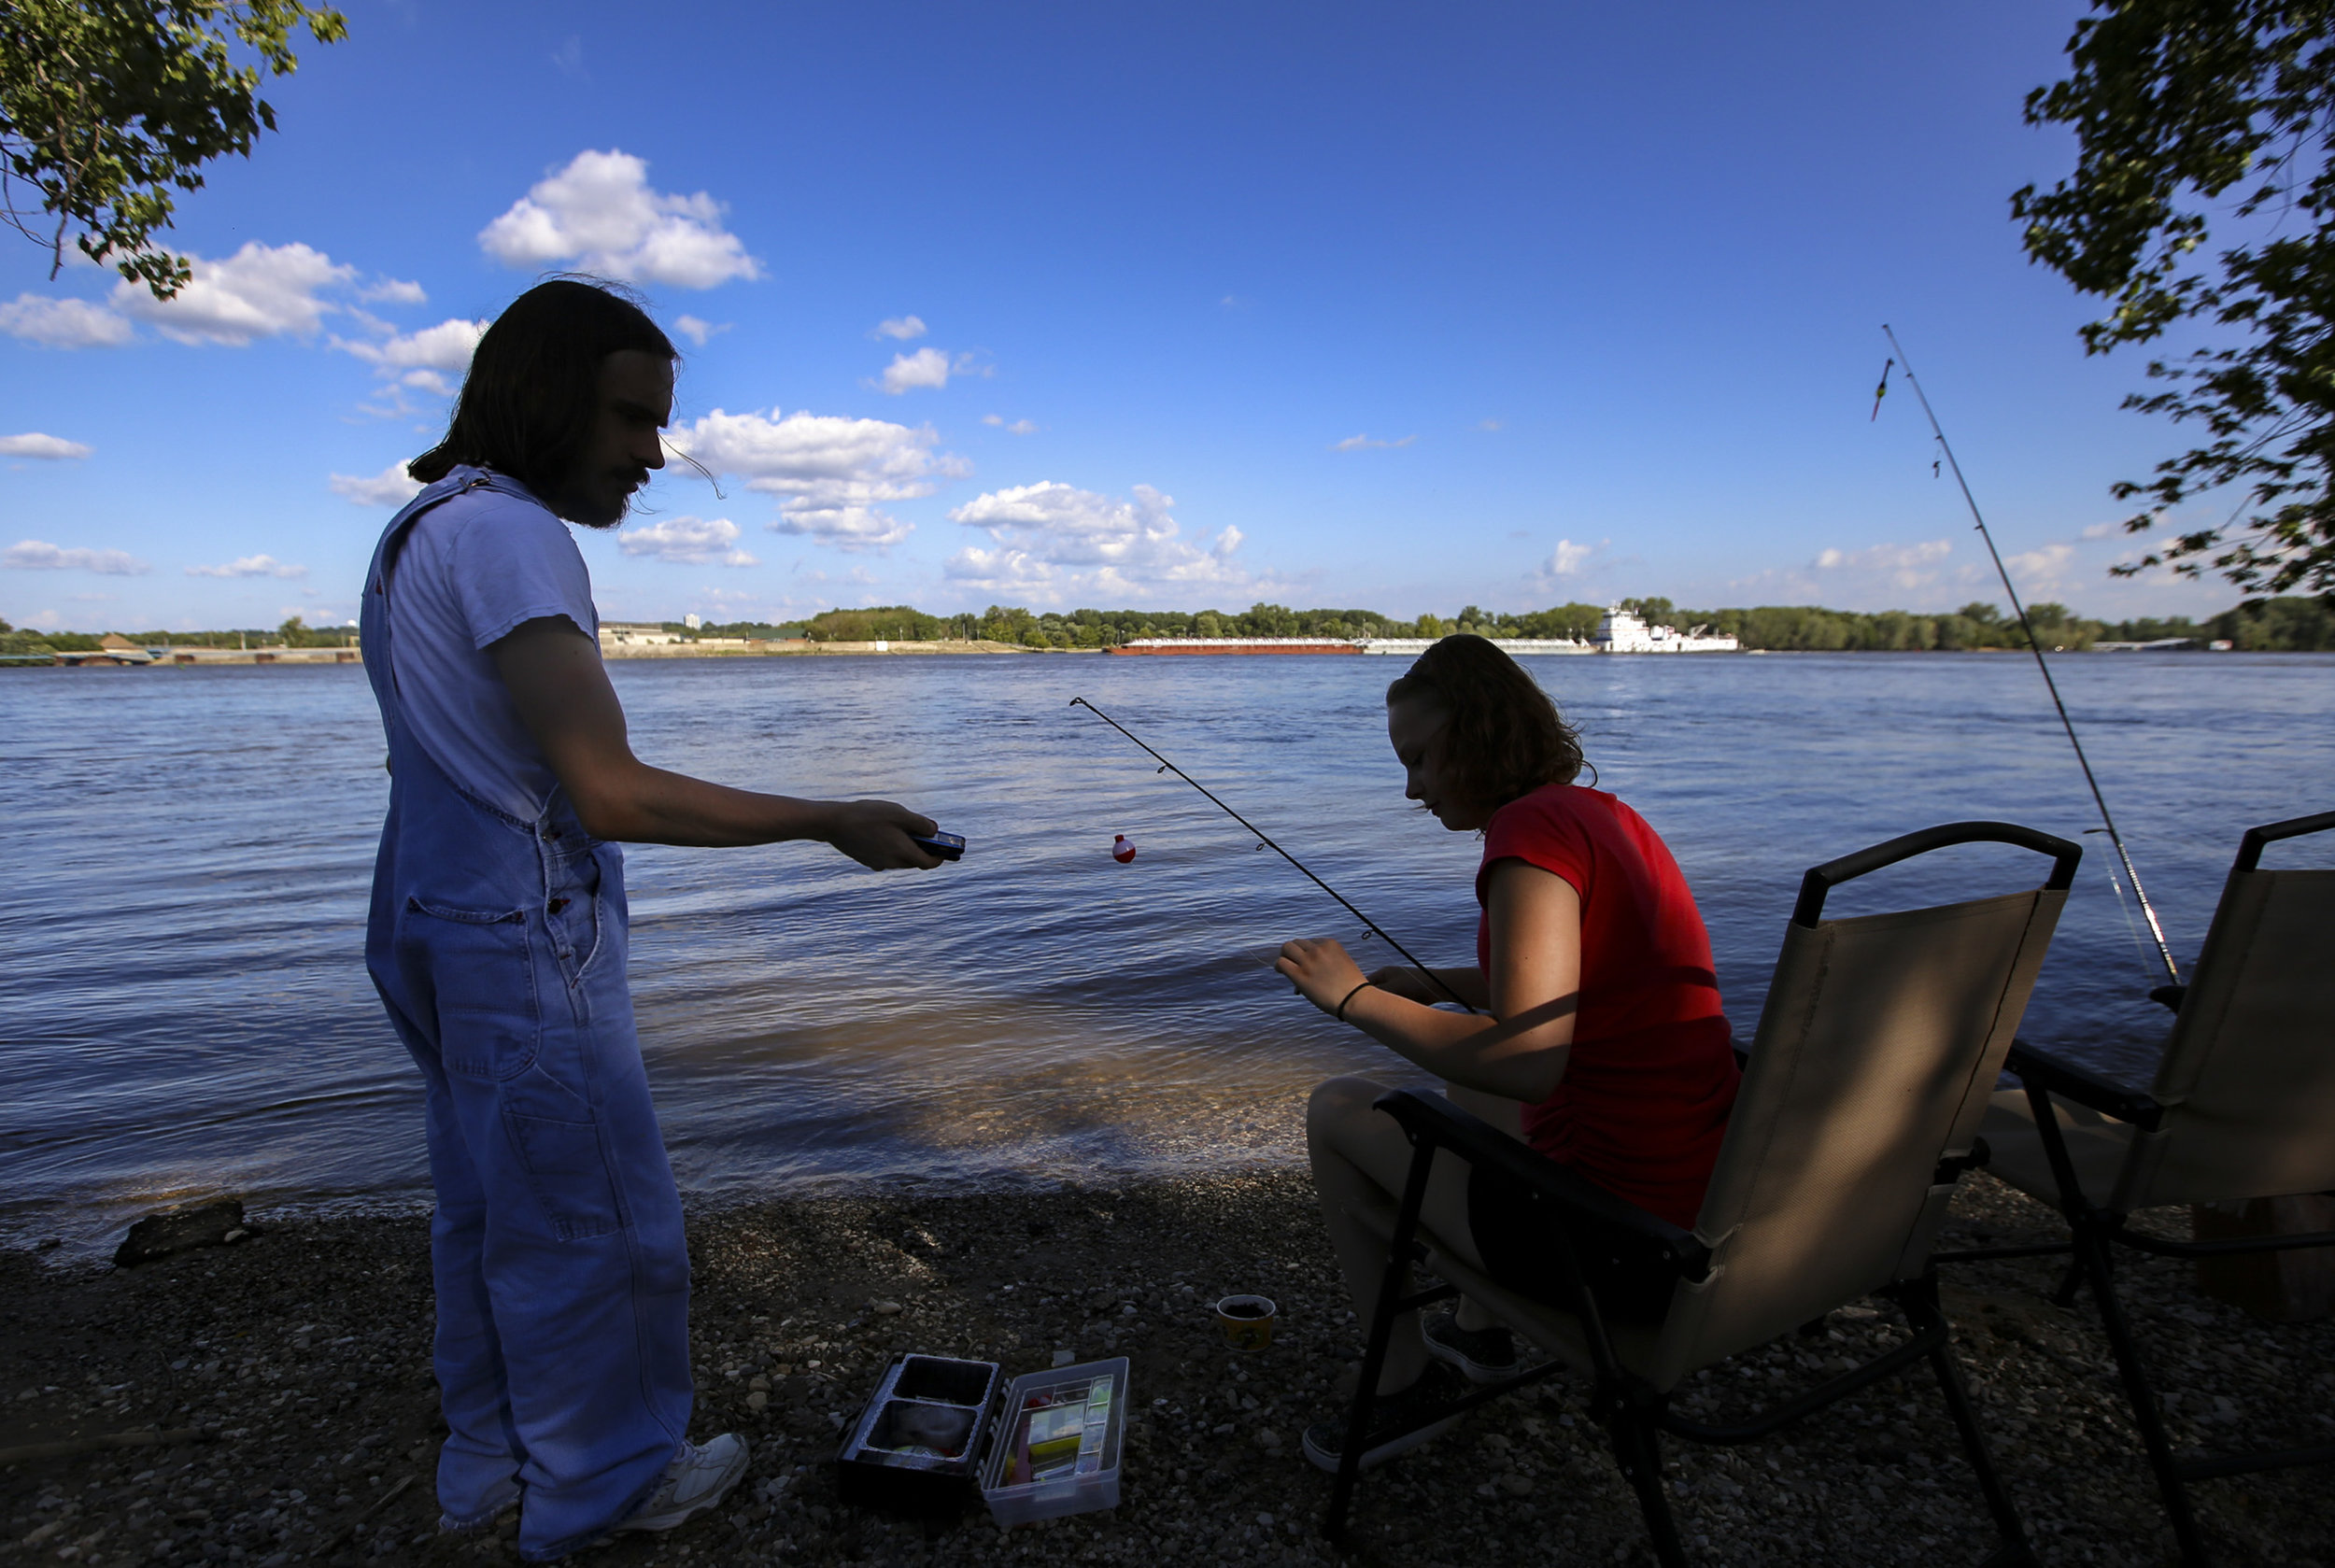 Alexandria Bribriesco of Davenport turns back to make a joke with Taylor Lance of Bluegrass as he baits his hook along the Mississippi River on Credit Island in Davenport, Tuesday, July 24, 2018. The two attended Mid-City High School together, graduating in 2017, and had not seen one another for about a year until Bribriesco reached out to Taylor to tell him they were going fishing.